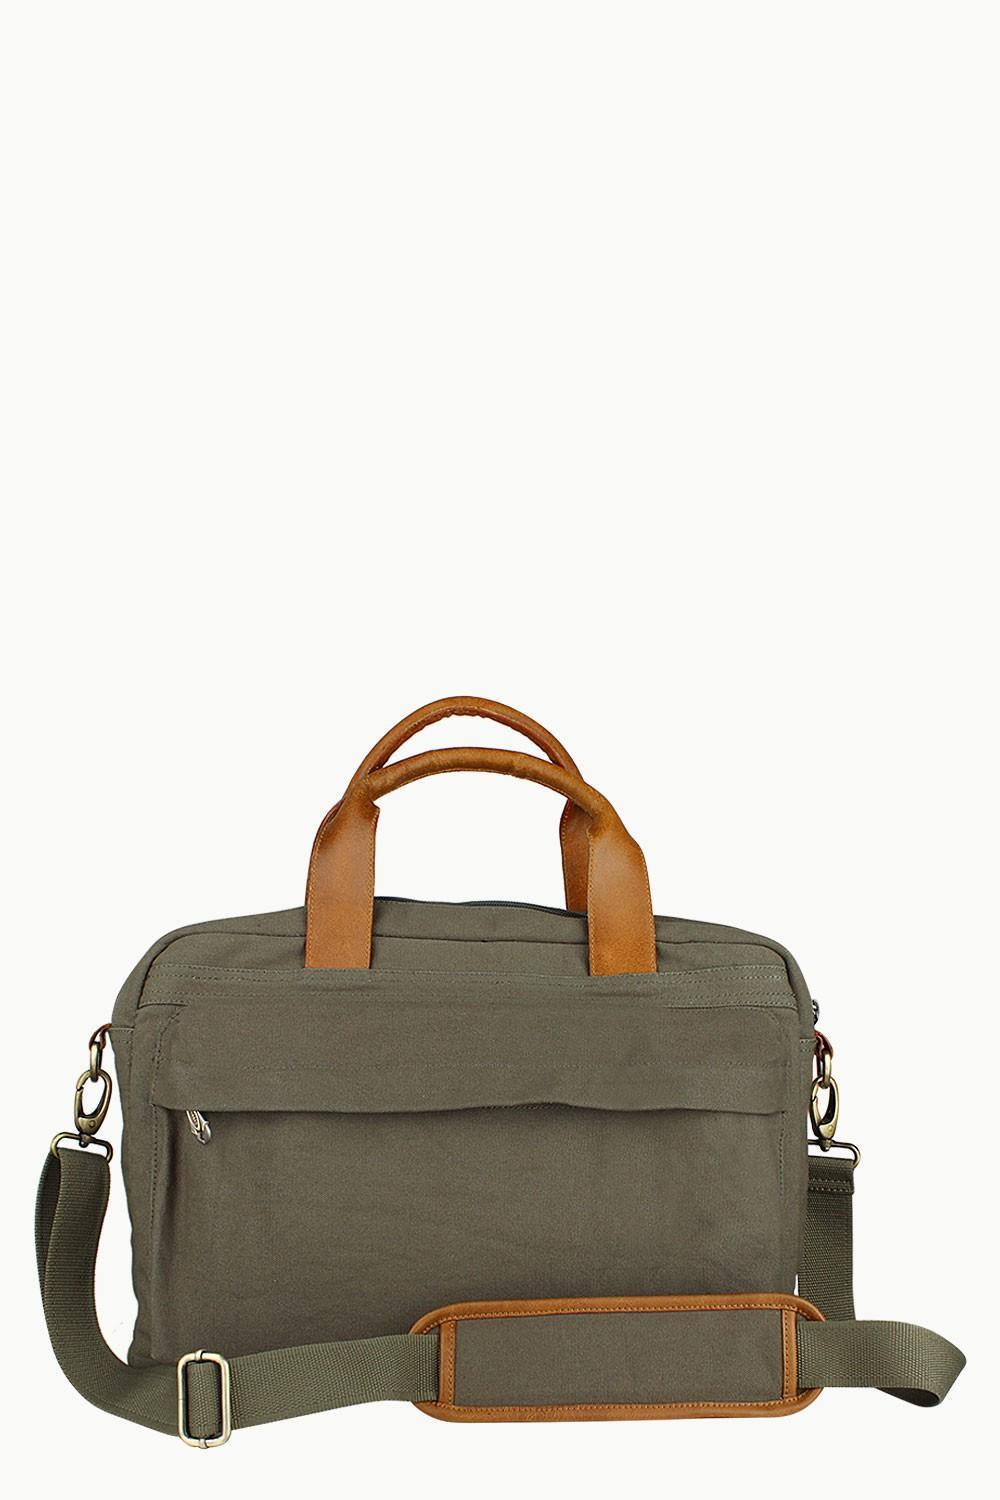 Buy Online Genuine Leather with DyedMoss Green Canvas Laptop Bags ... 9eac4a32a1674